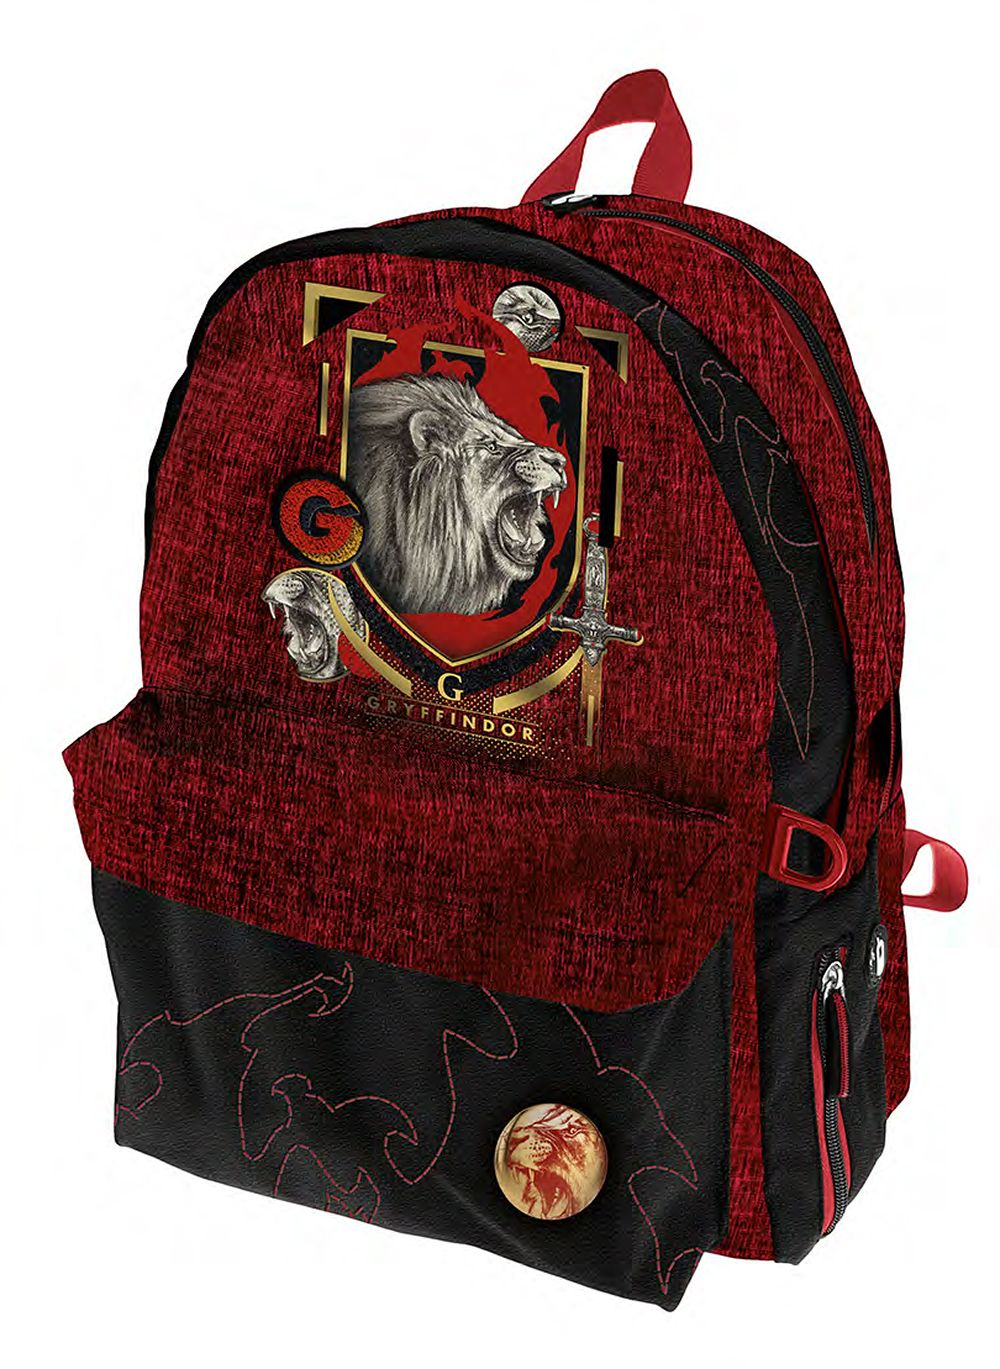 Harry Potter back to school backpack